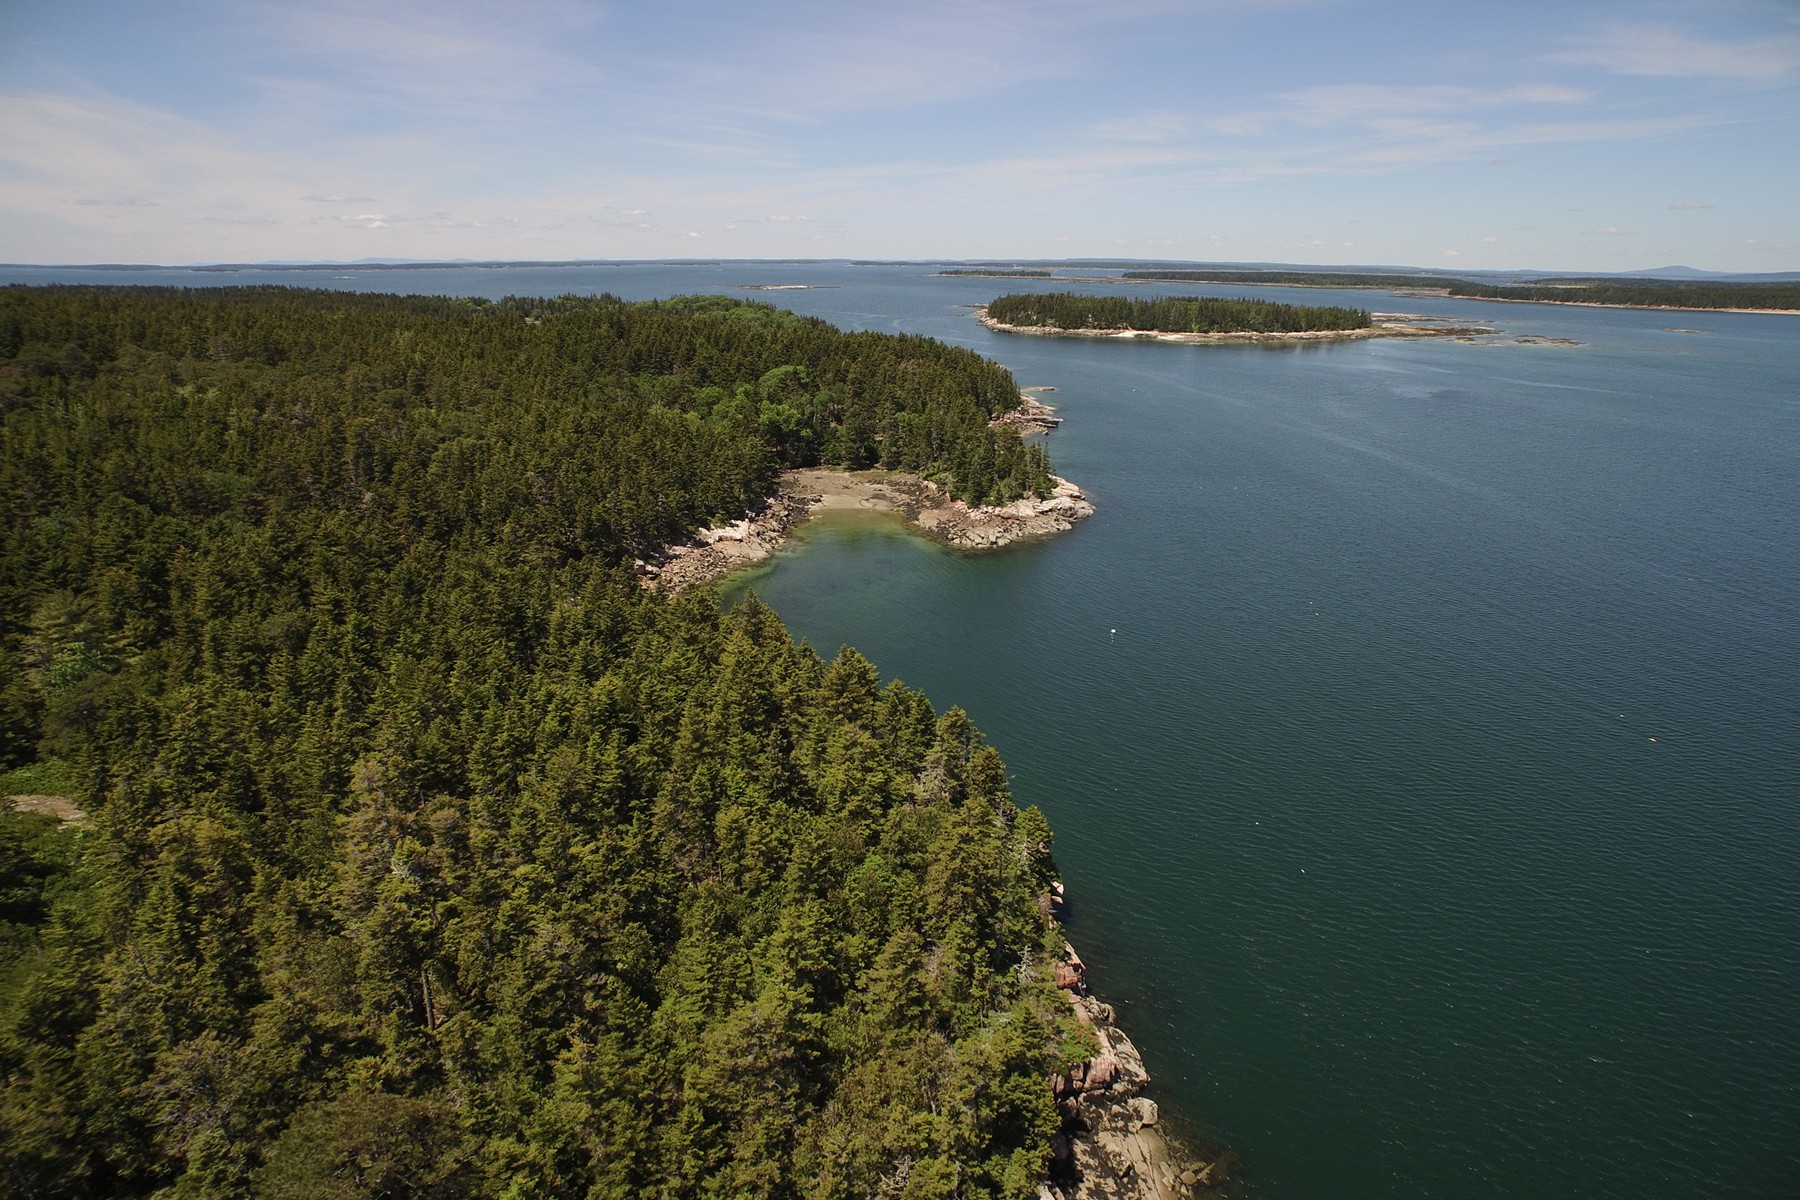 Land for Sale at Scallop Cove 0 Scallop Cove Road Swans Island, Maine, 04685 United States